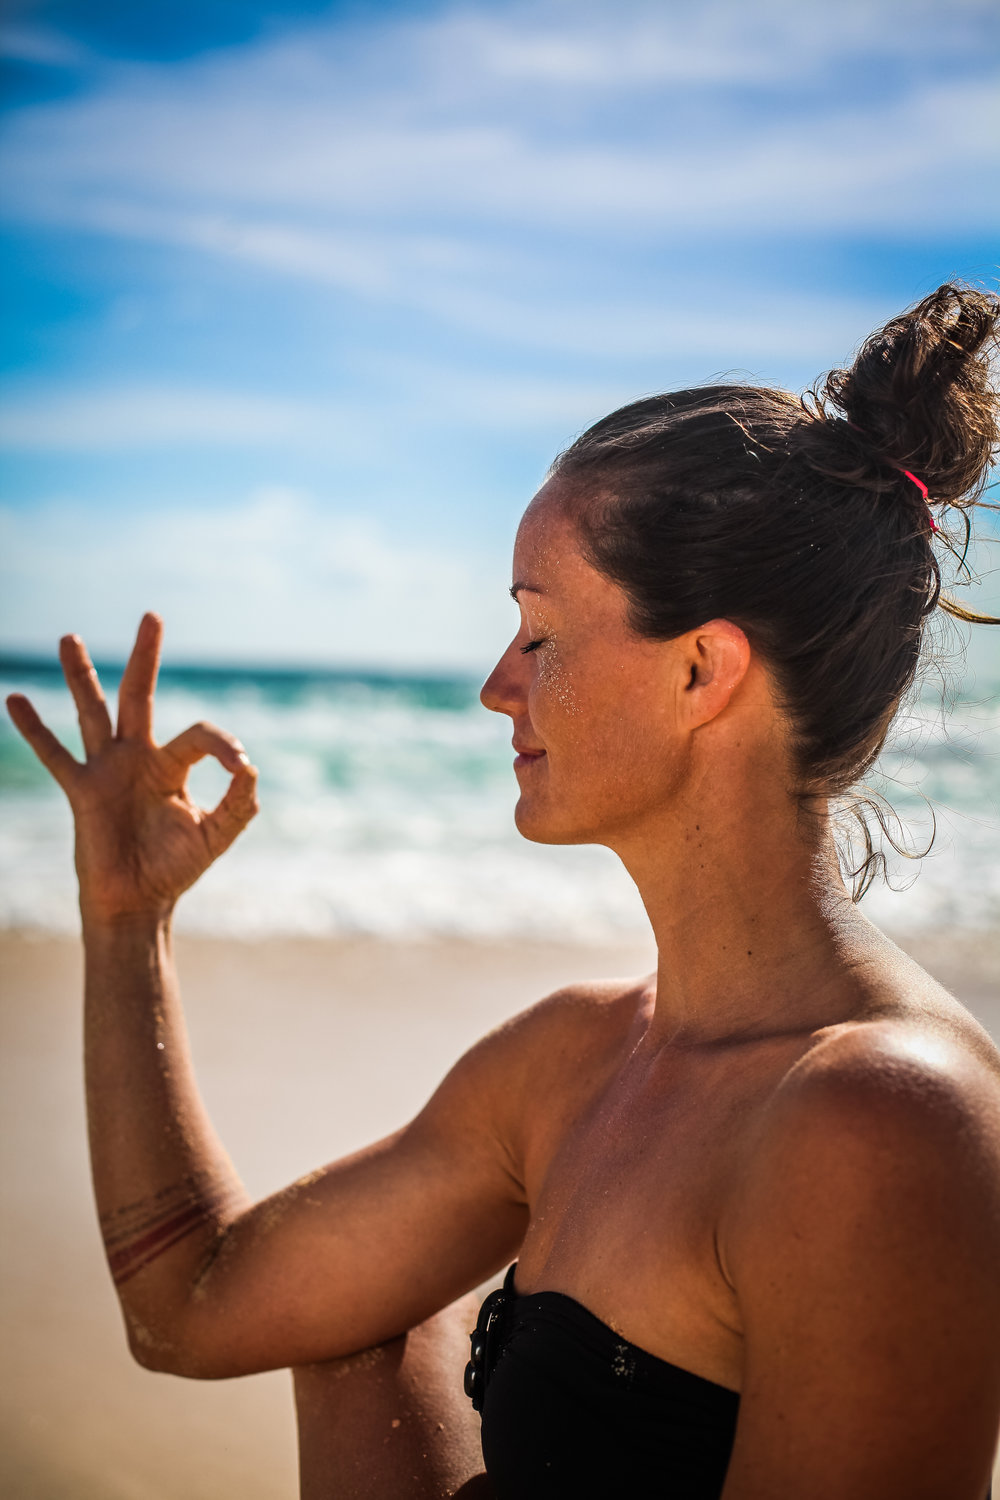 Re-programyour mind and lifewith yoga, meditation, mental training, an active lifestyle and healthy habits. - Looking for a way to improve your life and increase the feeling of freedom and happiness in your life, but not quite sure where to start?